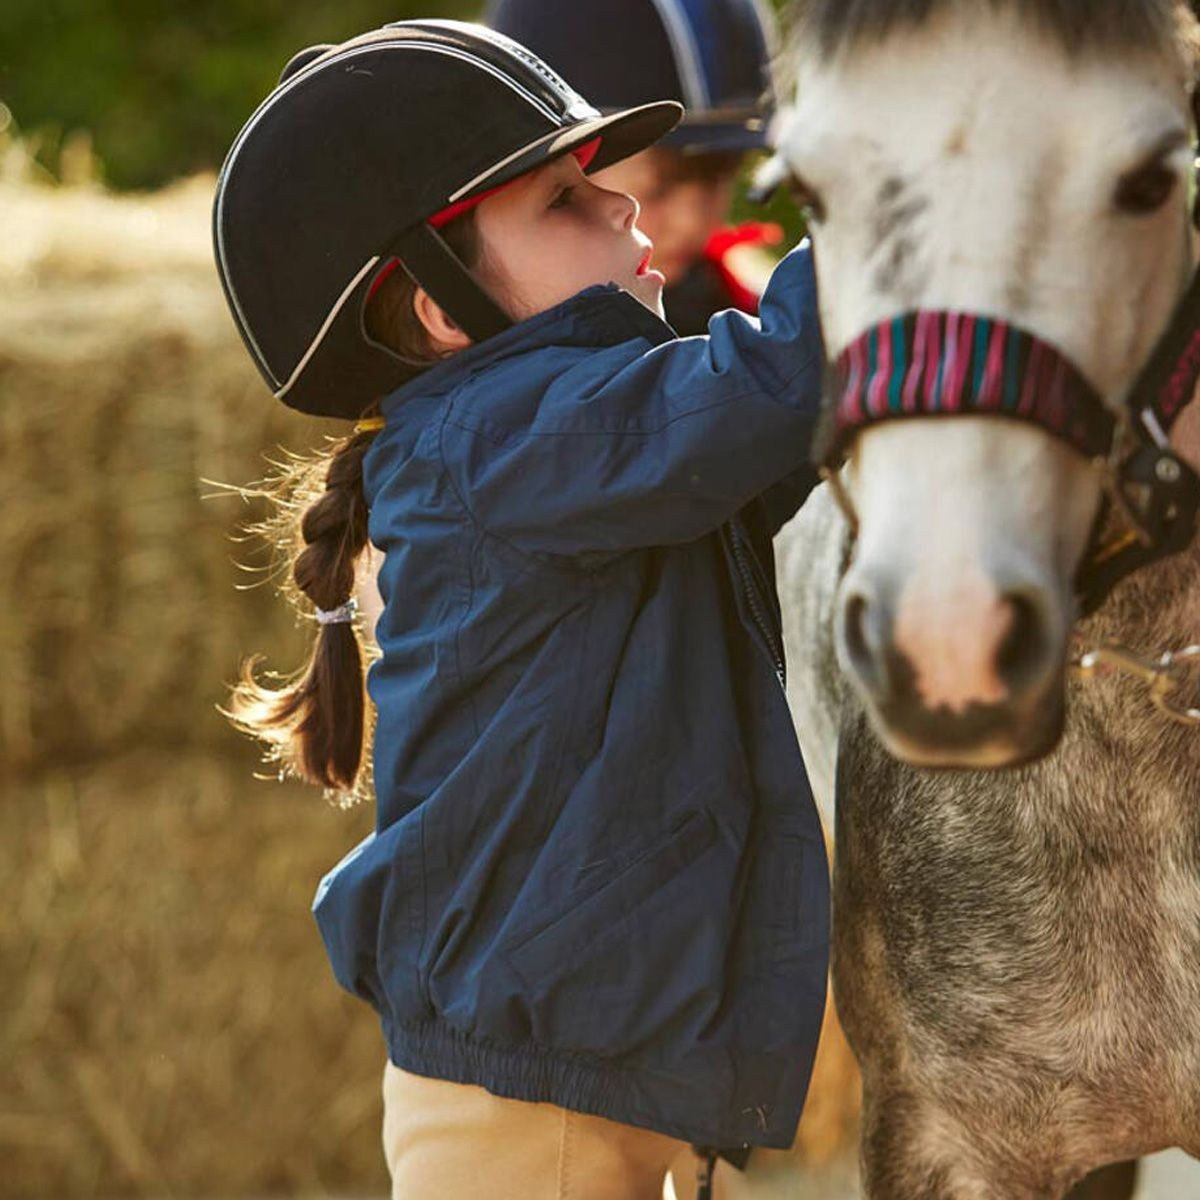 Harry Hall Kids Blouson Jacket  - Thomas Irving's equestrian and accessories store  Harry Hall Kids Blouson Jacket